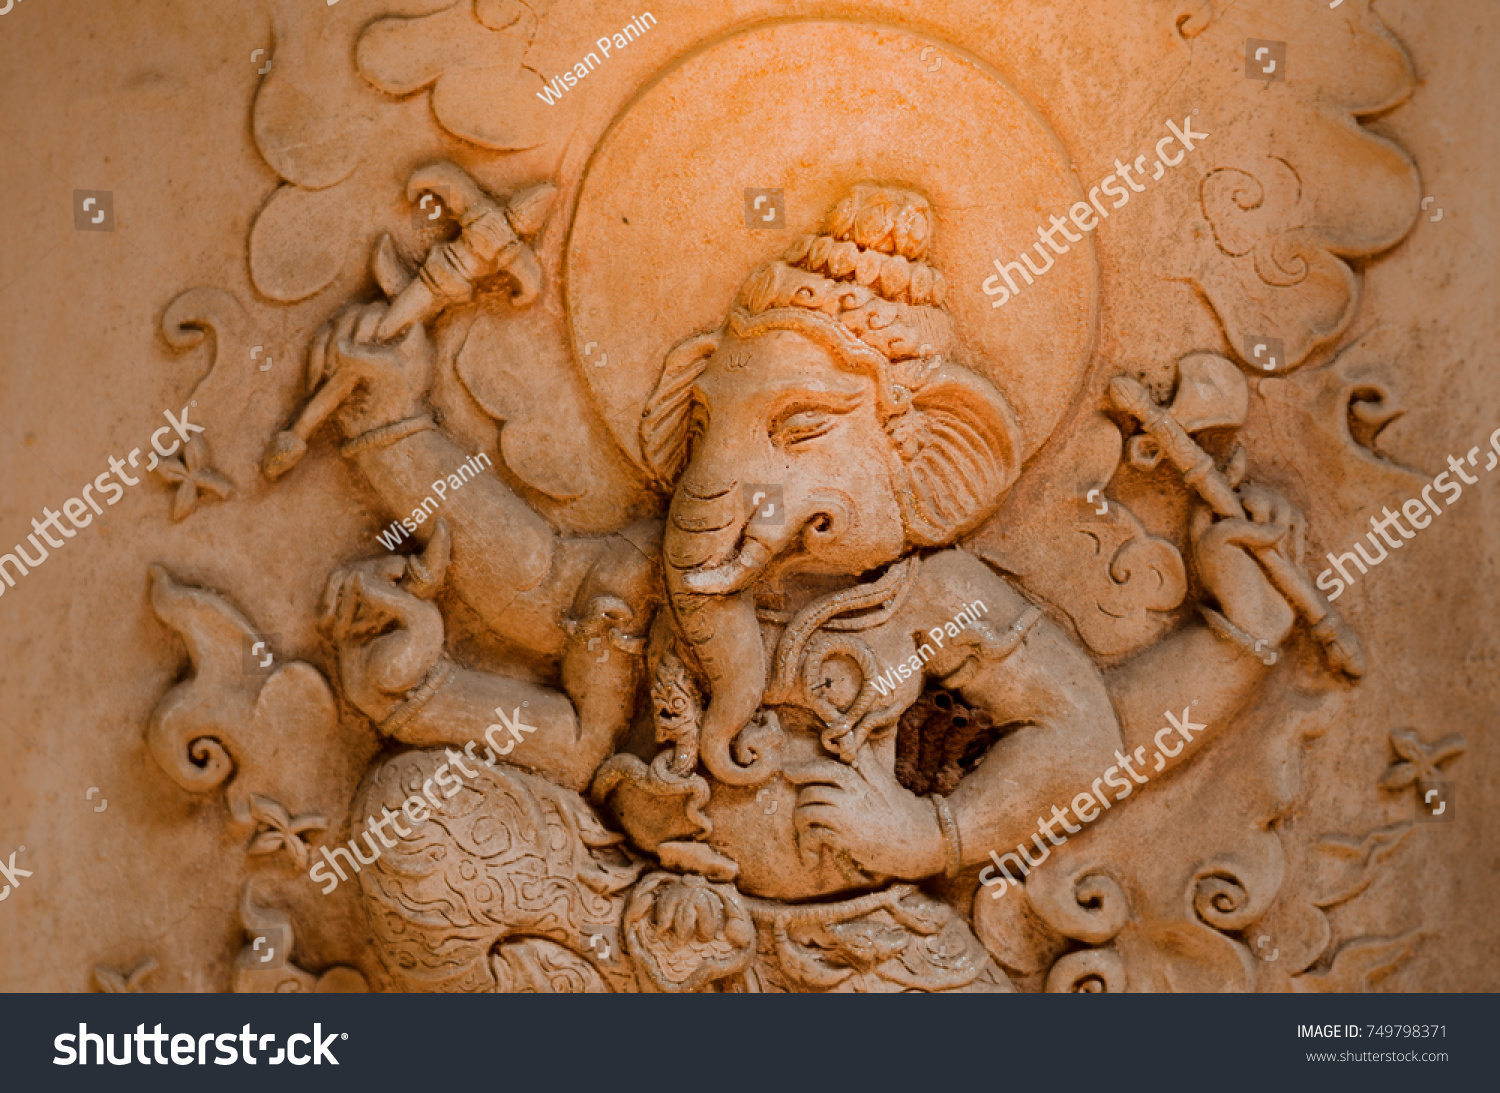 wall baked clay statue ganesh stock photo (100% legal protection